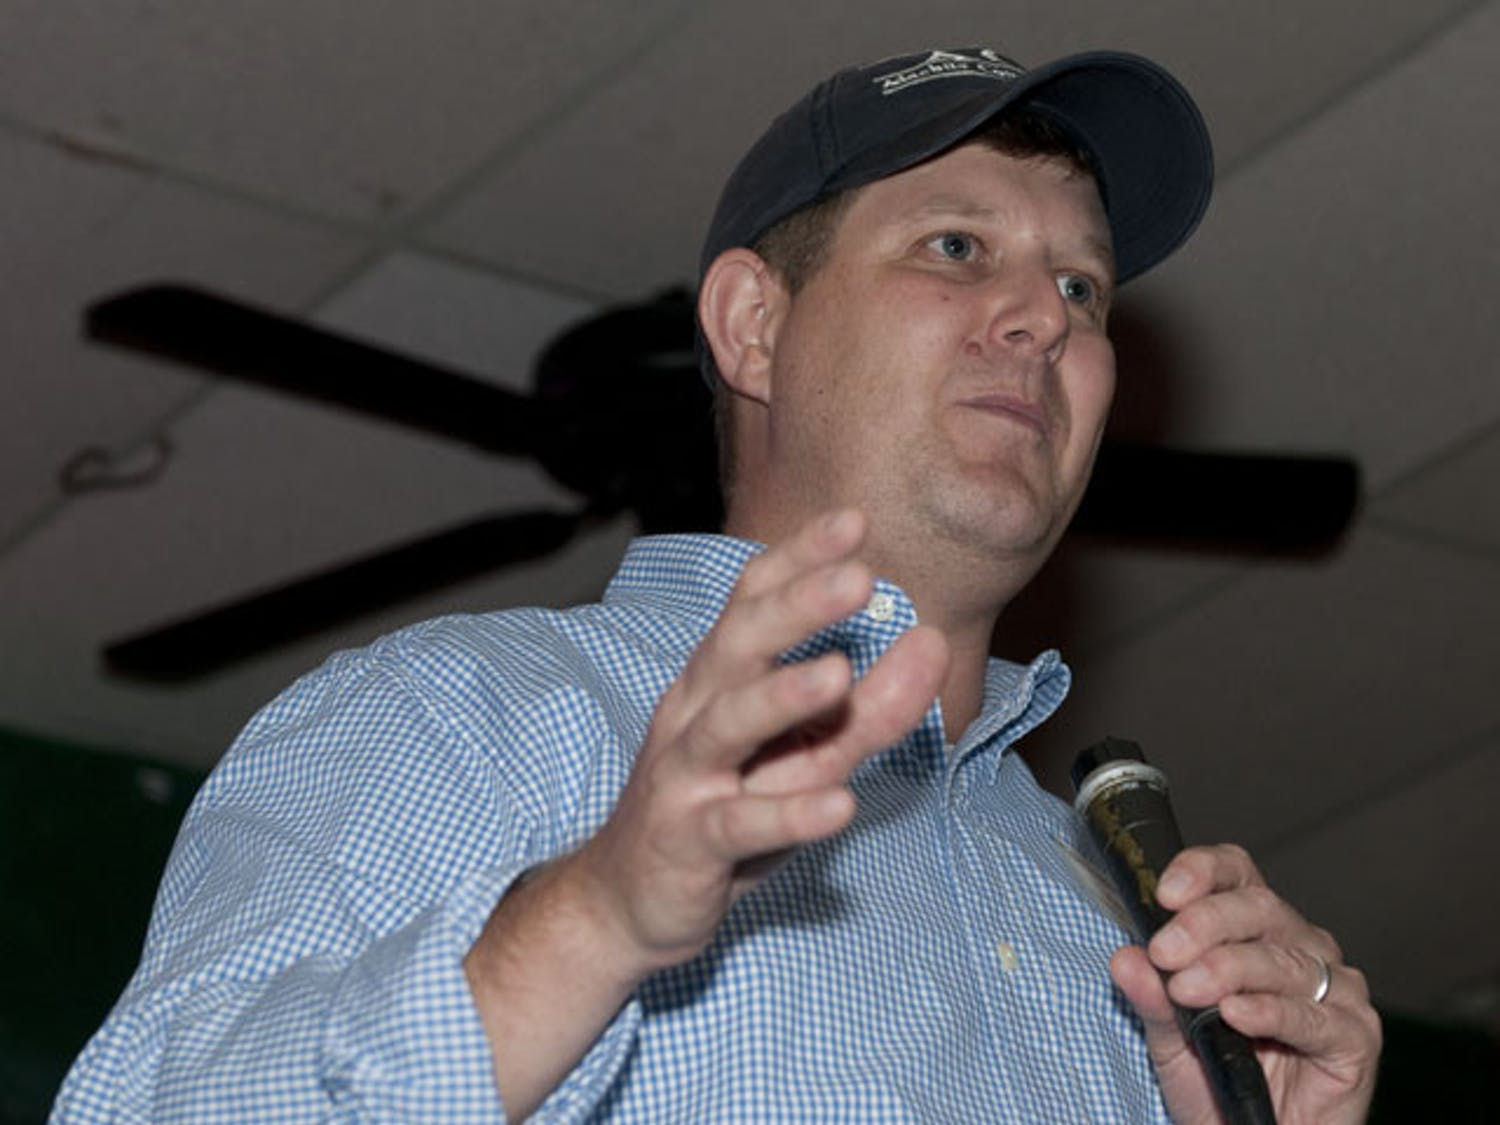 Lauren Poe speaks at Mother's Pub on Thursday about his candidacy for Gainesville's At-Large 1 seat in the 2012 election.